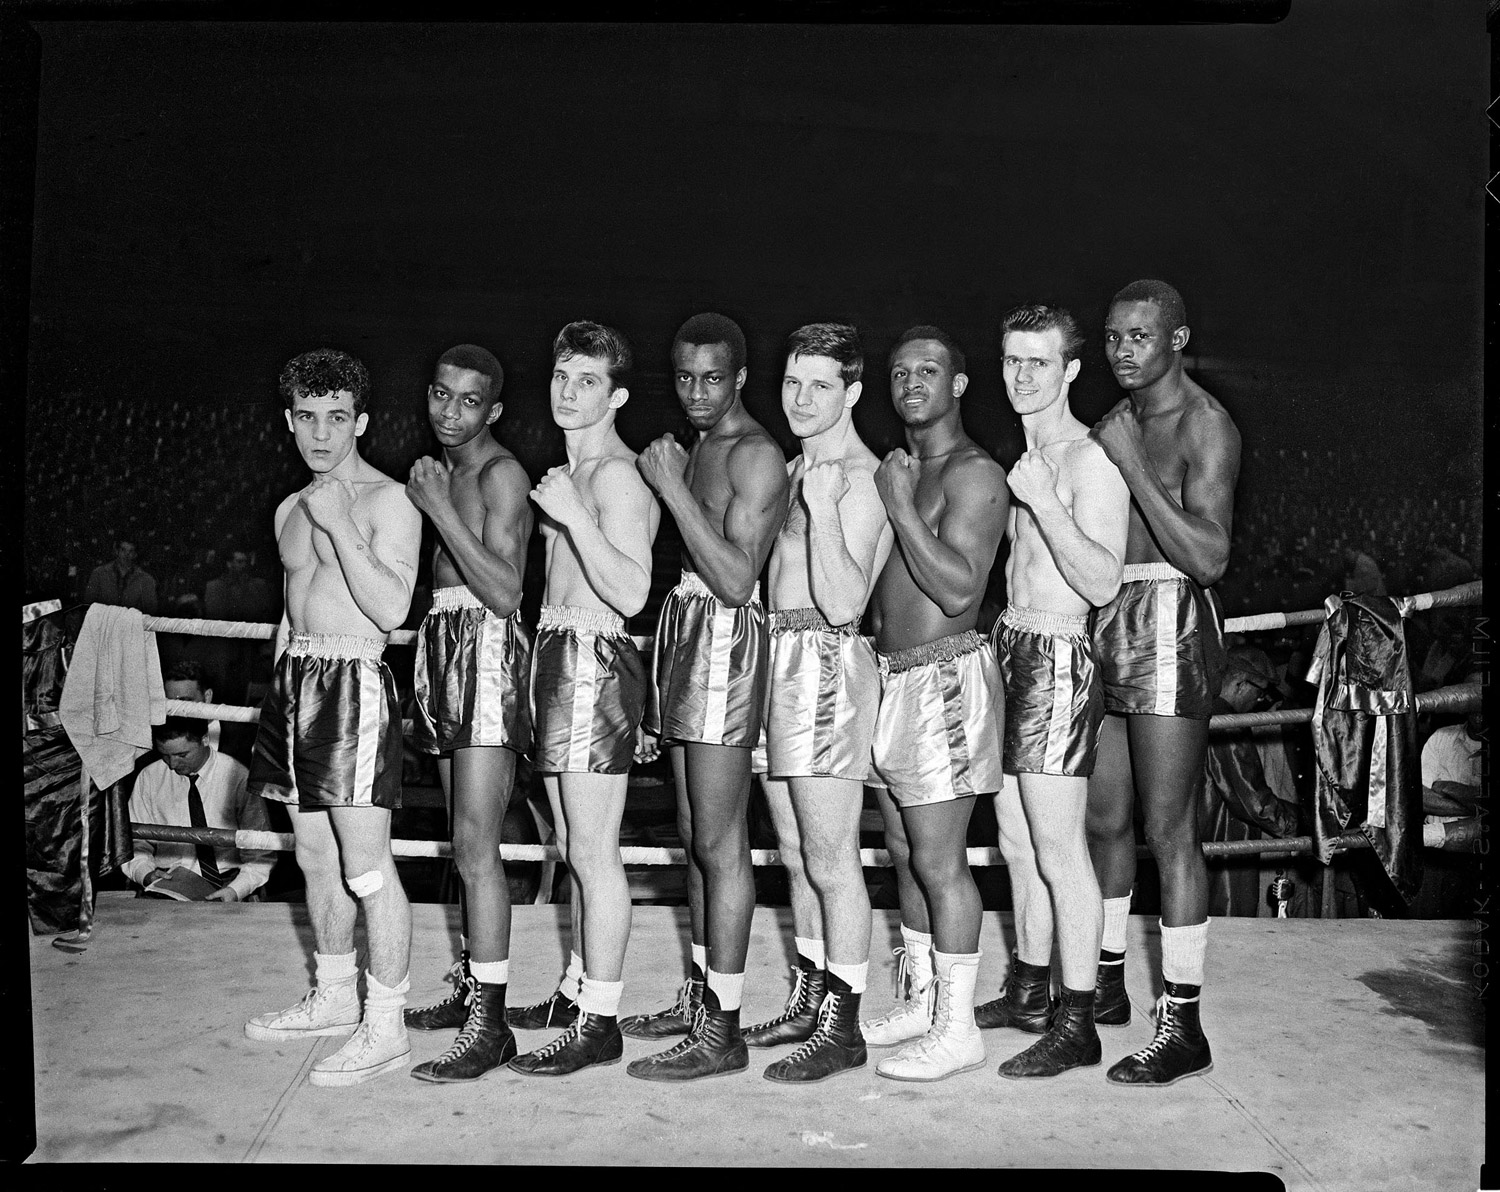 Boxers, possibly Golden Gloves contenders, line up in a boxing ring, 1955.